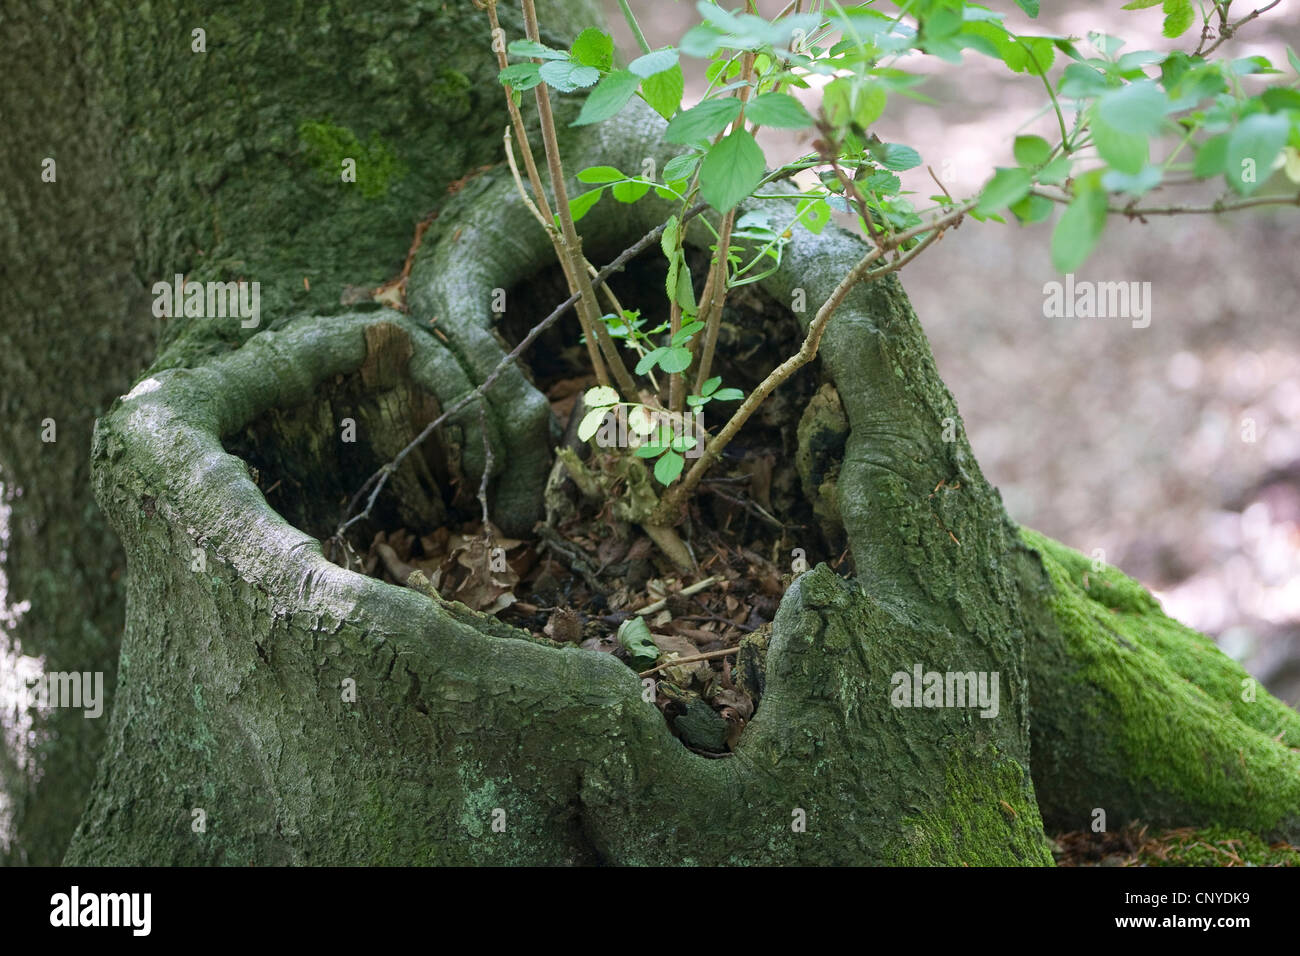 elder (Sambucus spec.), young elderberry bush growing out of a heart-shaped knothole at a tree trunk filled with - Stock Image